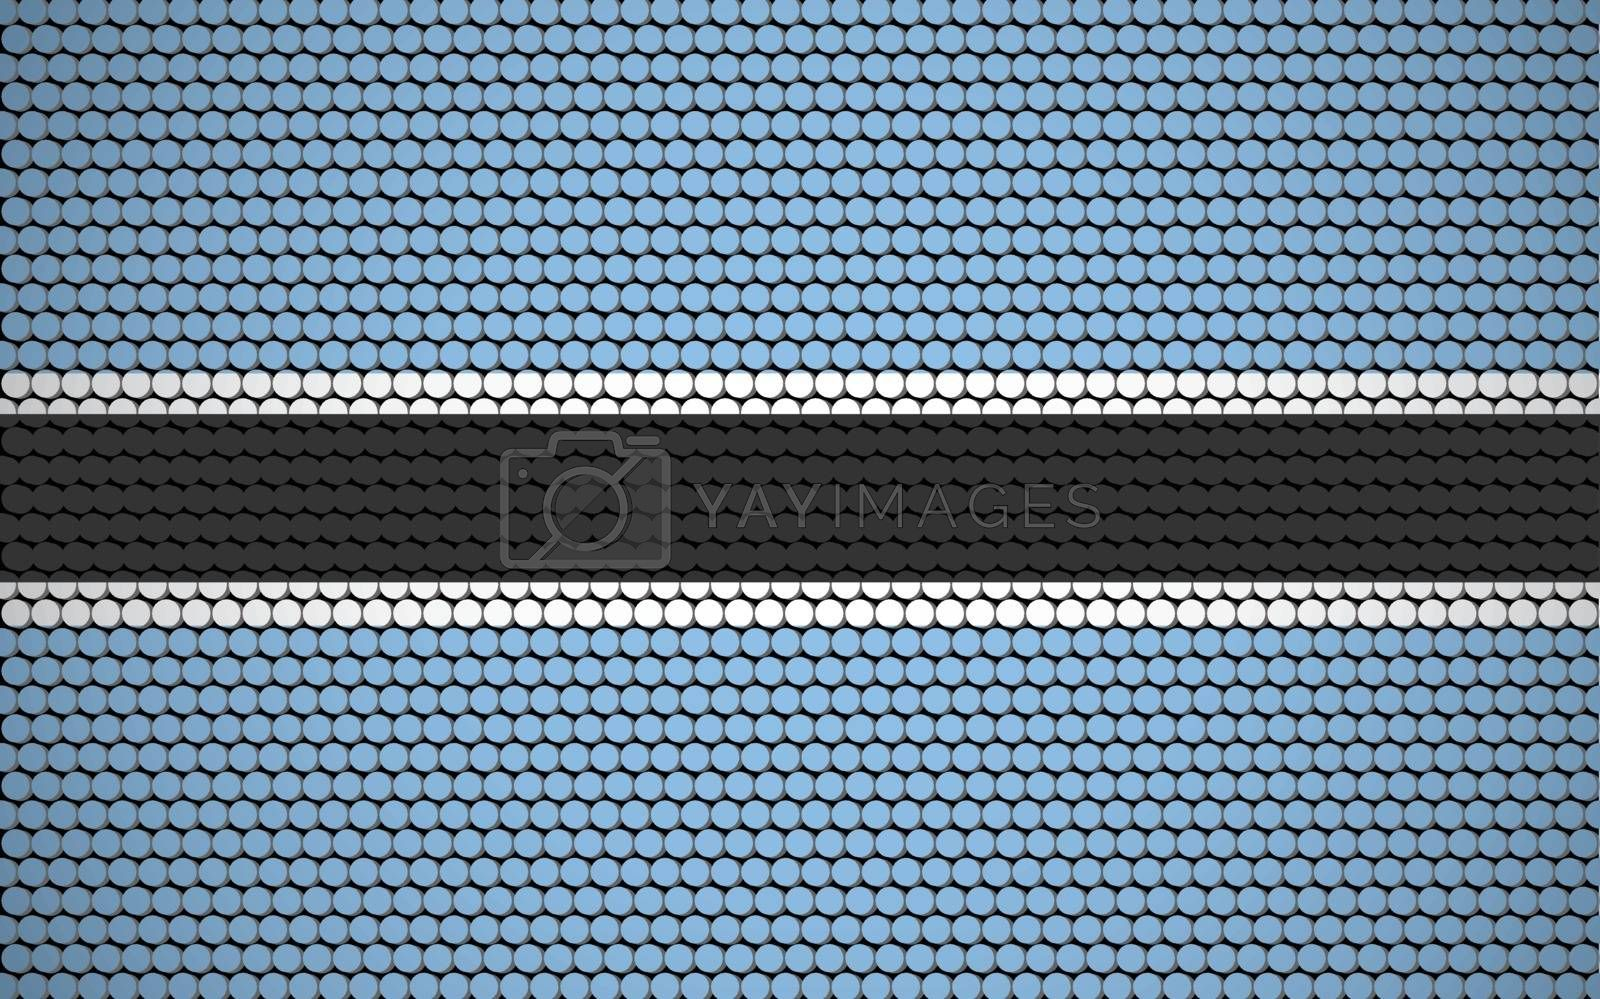 Abstract flag of Botswana made of circles. Batswana flag designed with colored dots giving it a modern and futuristic abstract look.